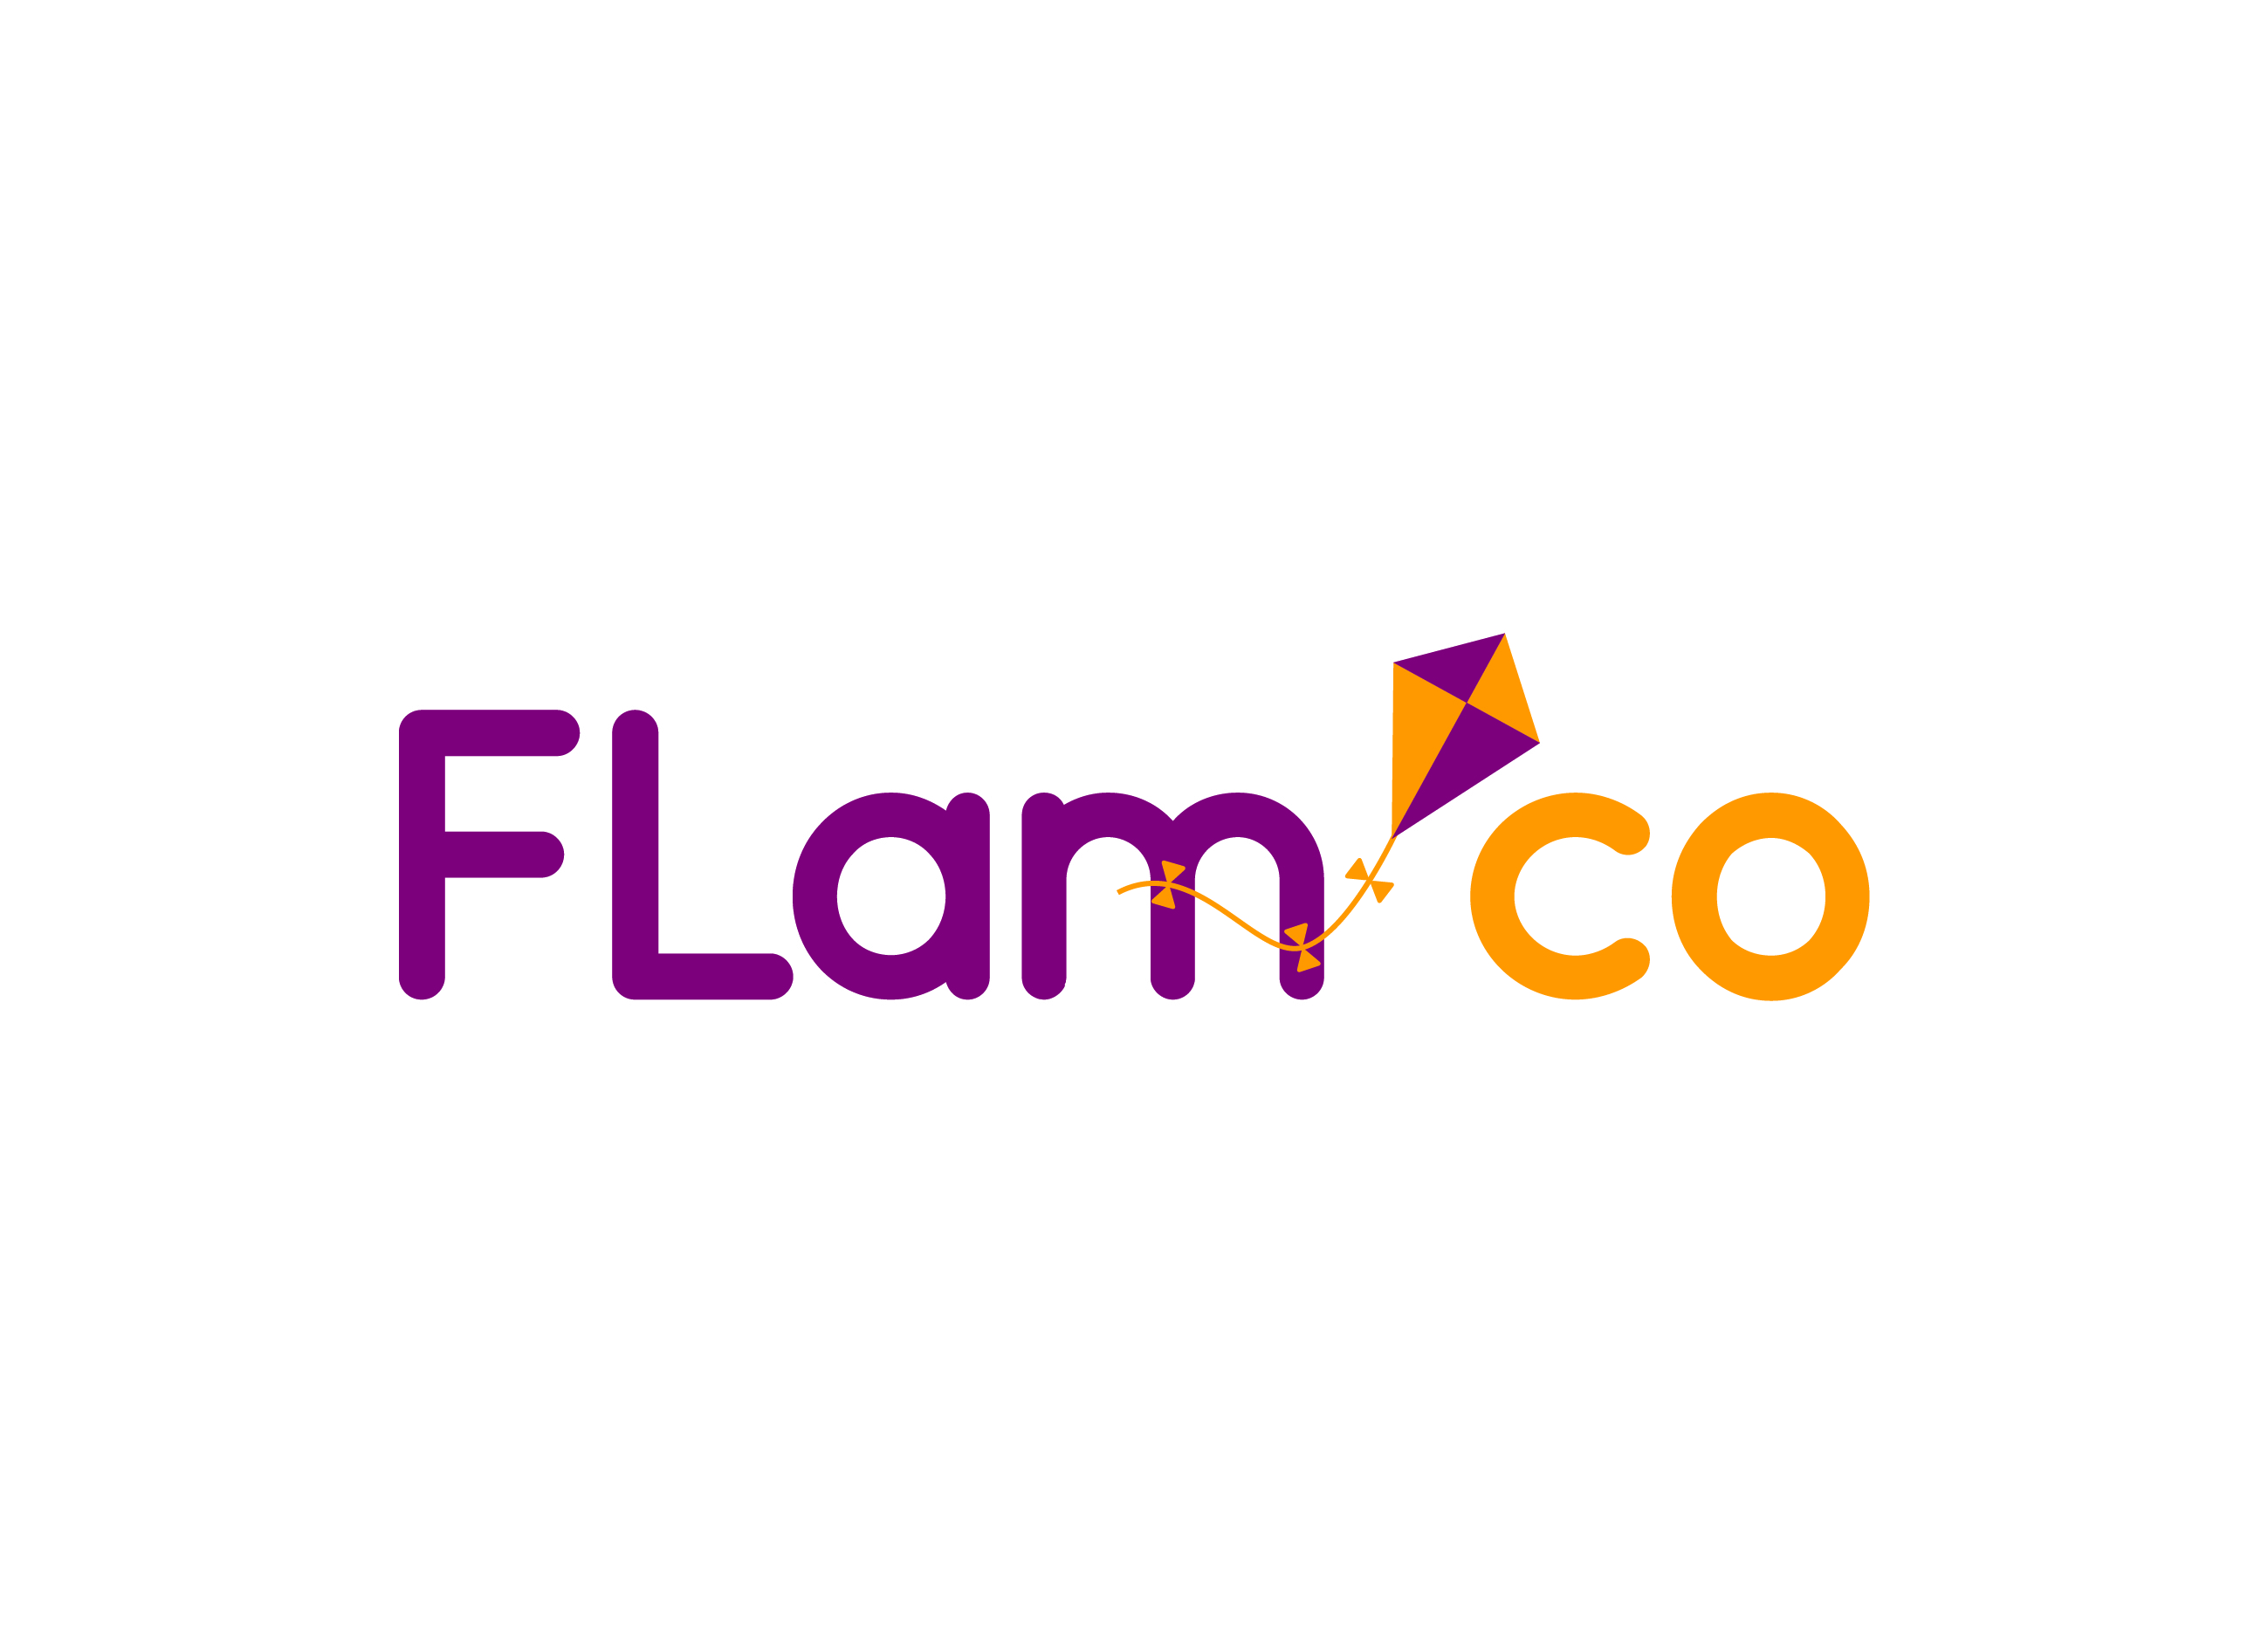 FLAMCO, coaching, Coaching, Conseil Gestion, conseil gestion, subvention, Subvention, vin, Vin, Chateau, chateau, consultant